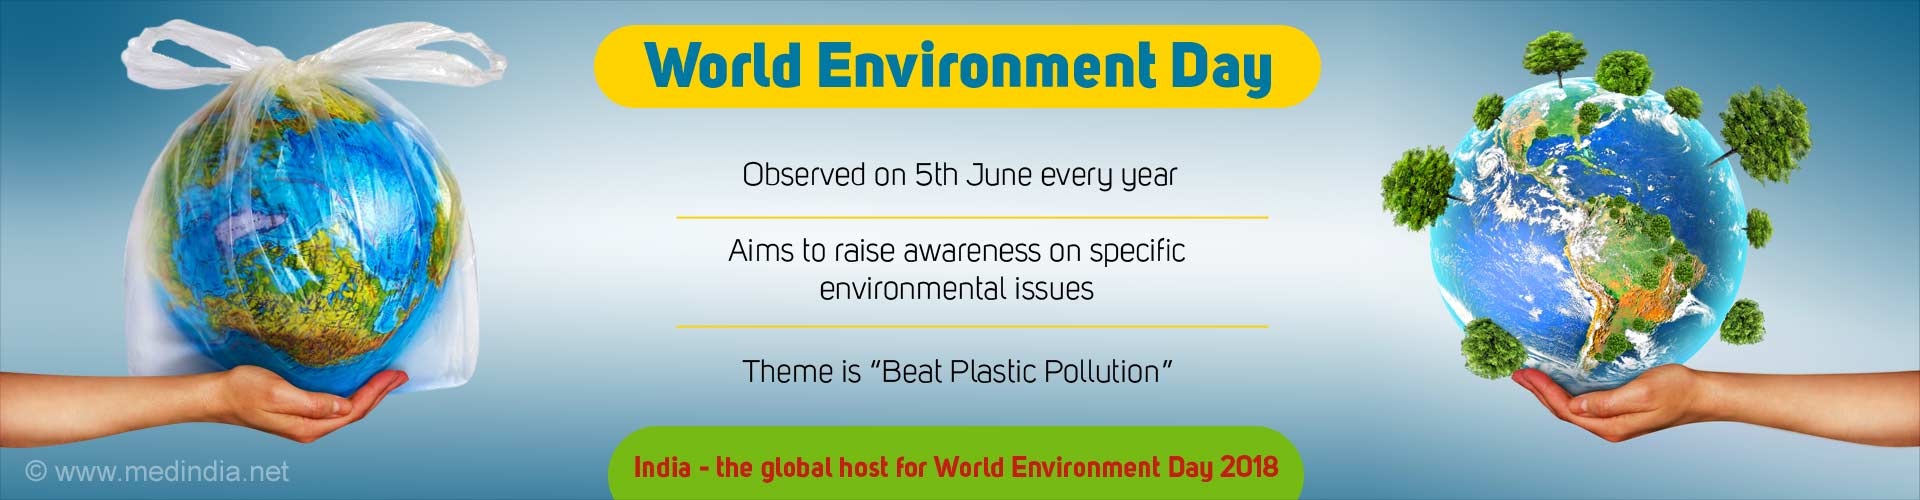 World Environment Day. Observed on 5th June every year. Aims to raise awareness on specific environmental issues. Theme is Beat Plastic Pollution. India - the global host for World Environment Day 2018.